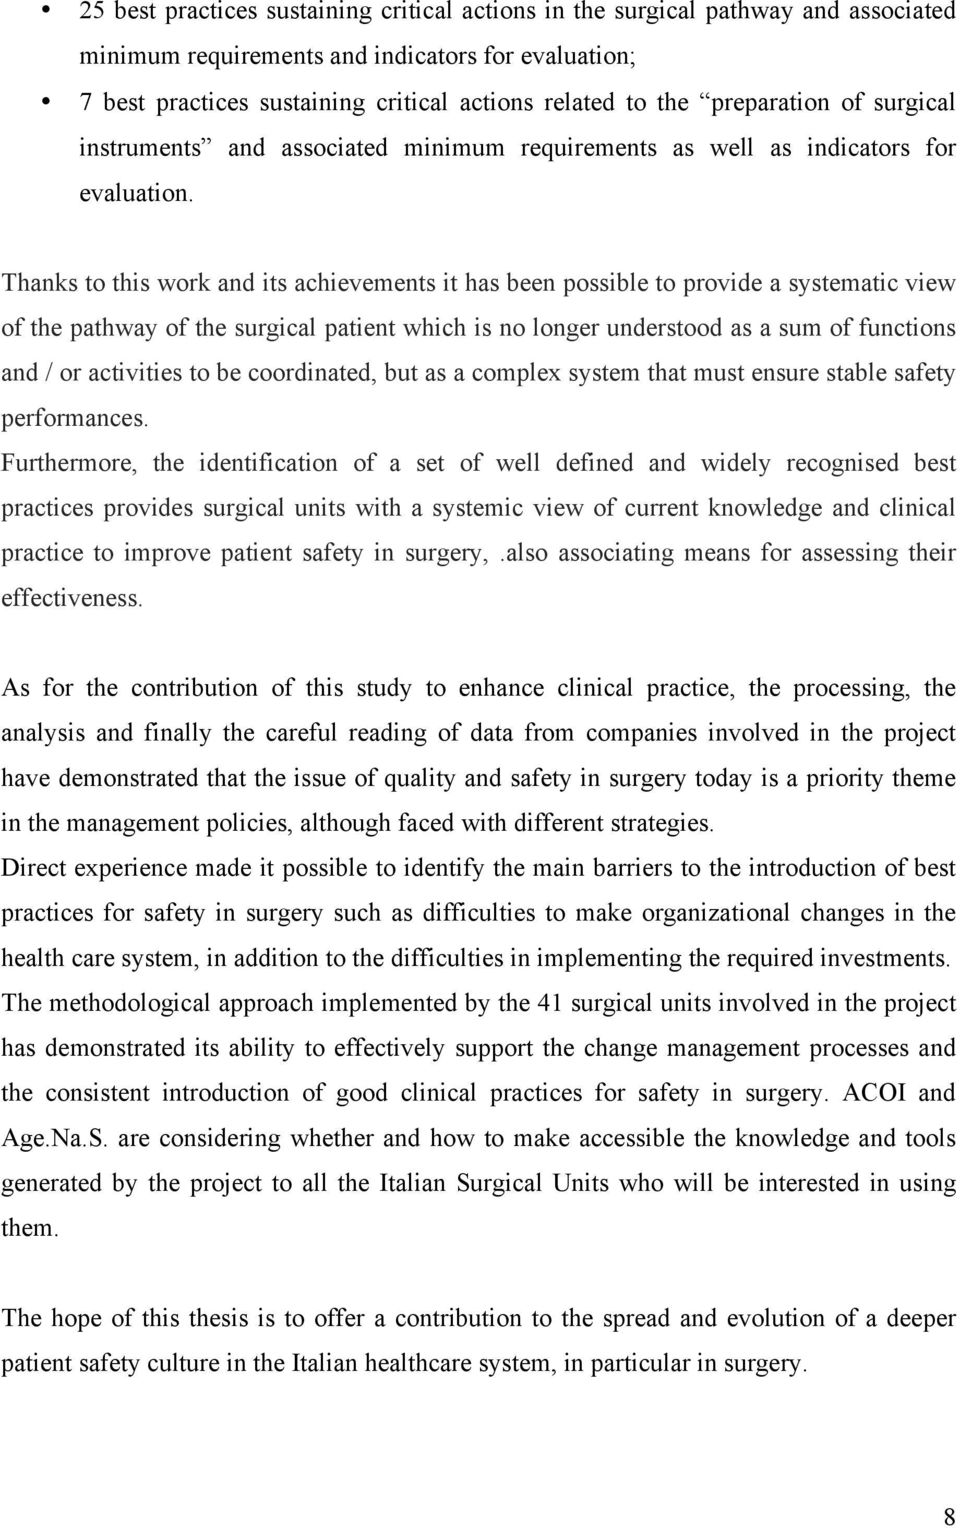 Thanks to this work and its achievements it has been possible to provide a systematic view of the pathway of the surgical patient which is no longer understood as a sum of functions and / or